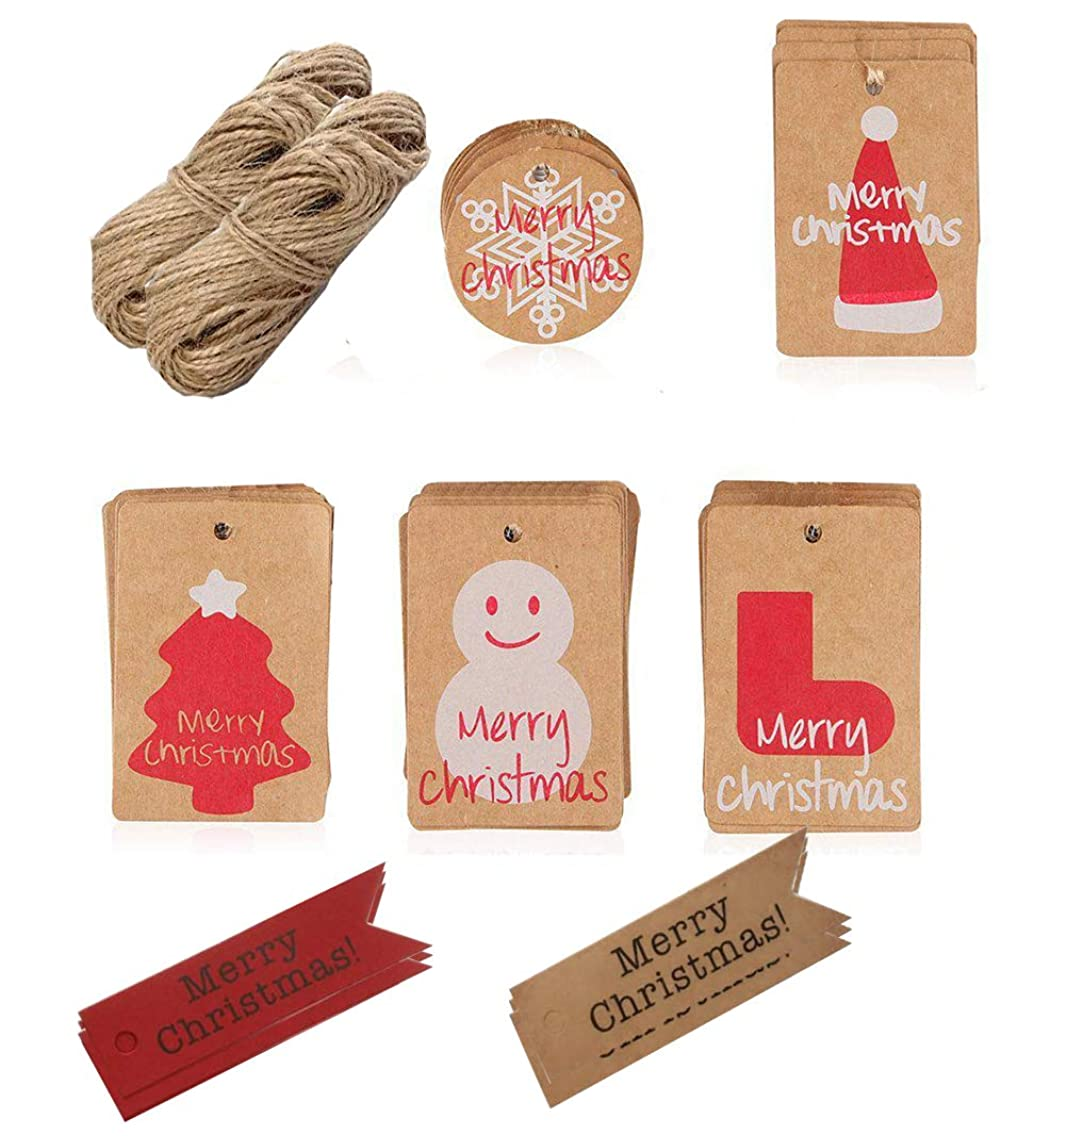 lovielf Kraft Paper Christmas Gift Wrap Tags Labels Set (175 Pieces) with String (65 Feet/ 20m), 7 Different Style